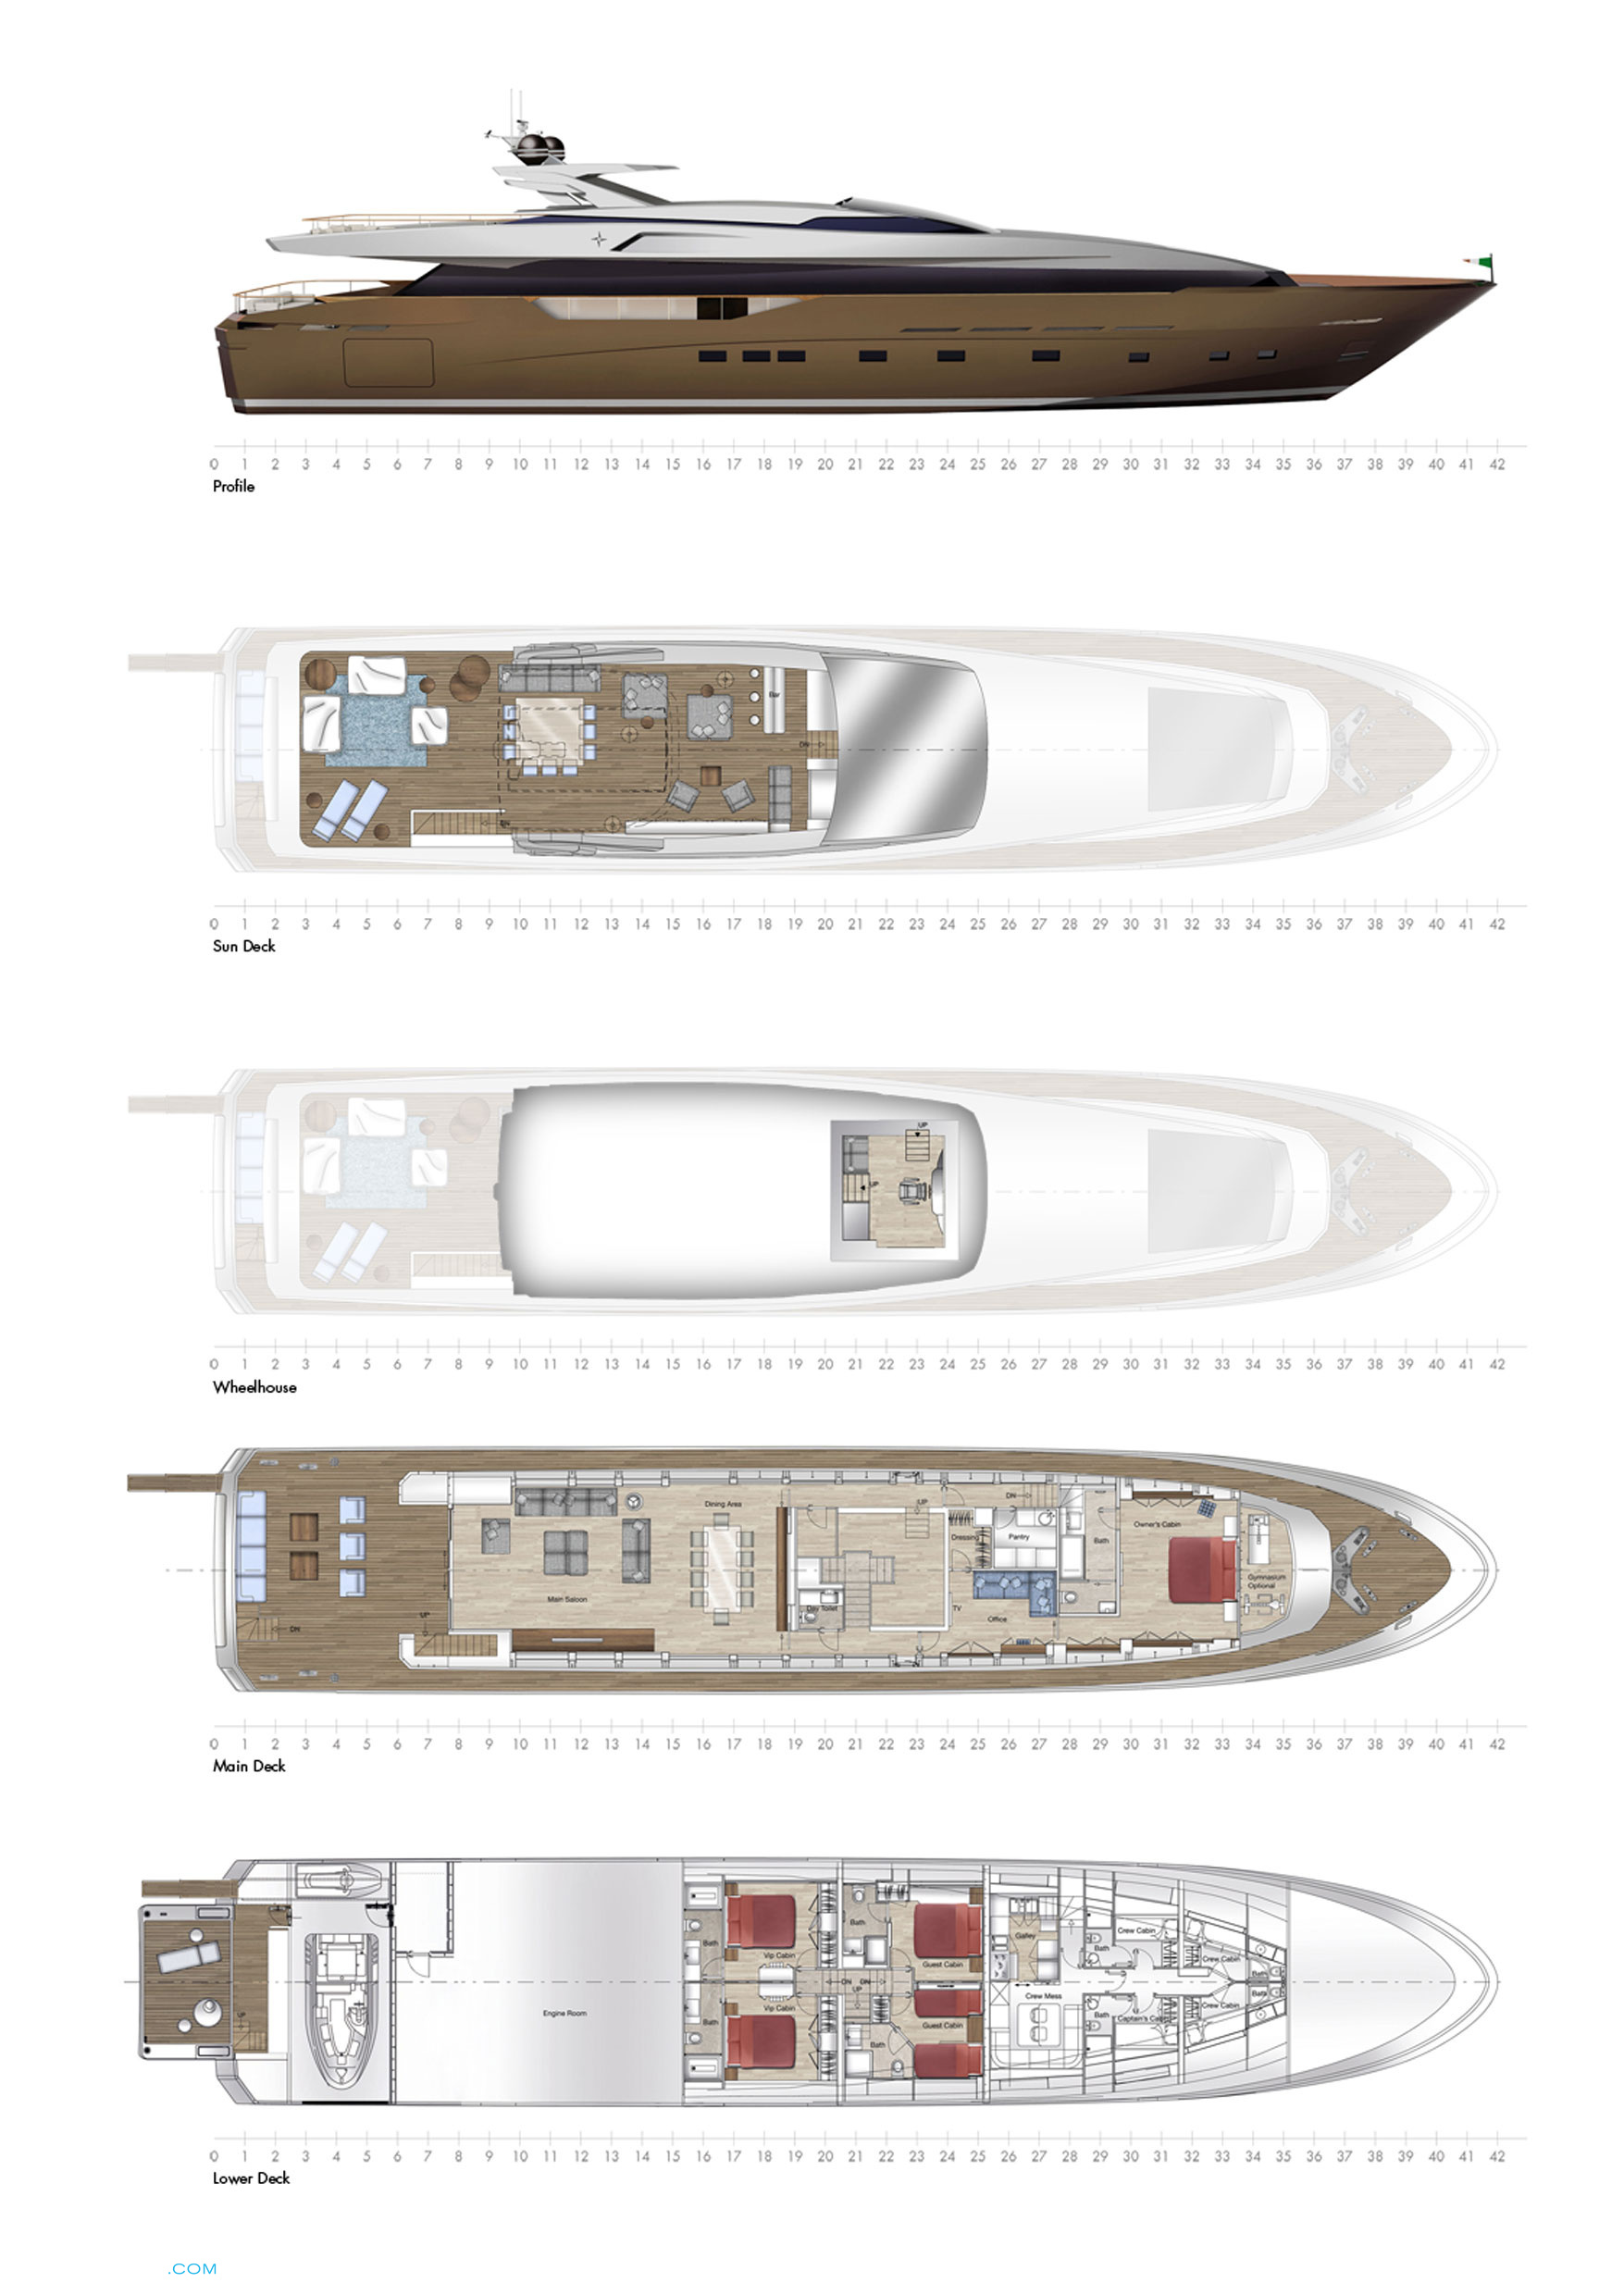 Regale 42 RPH Yacht | Layout Admiral Motor.. | superyachts.com